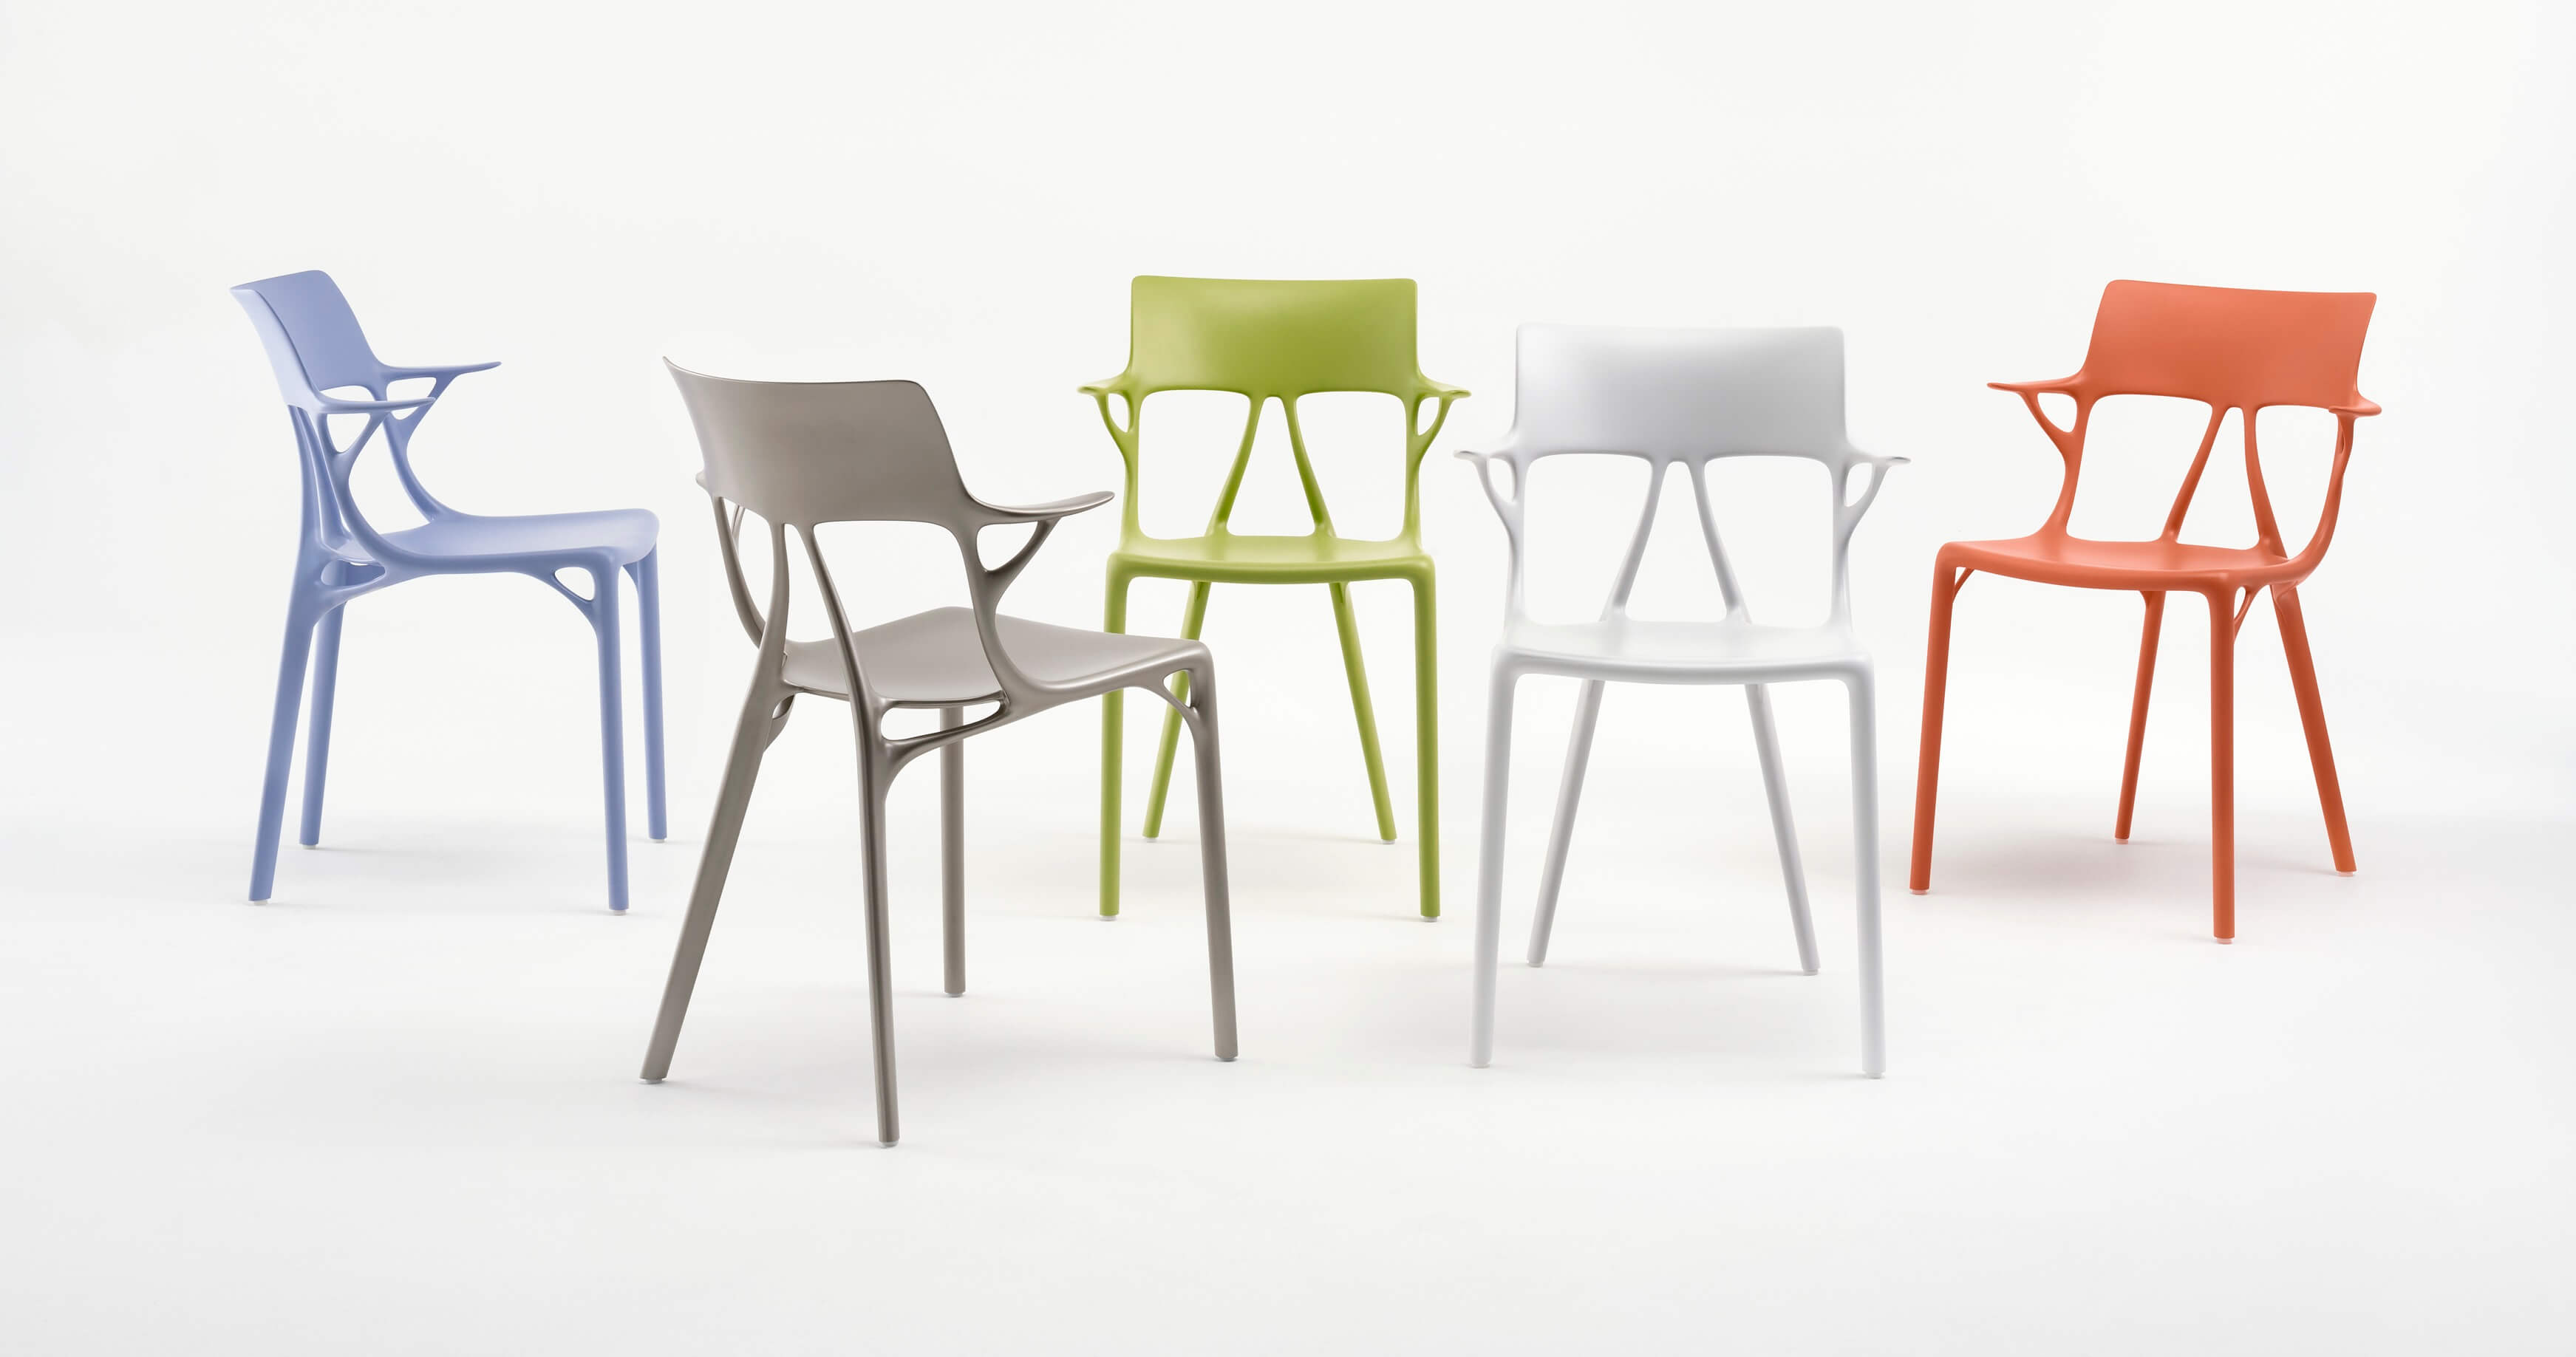 A I BY PHILIPPE STARCK